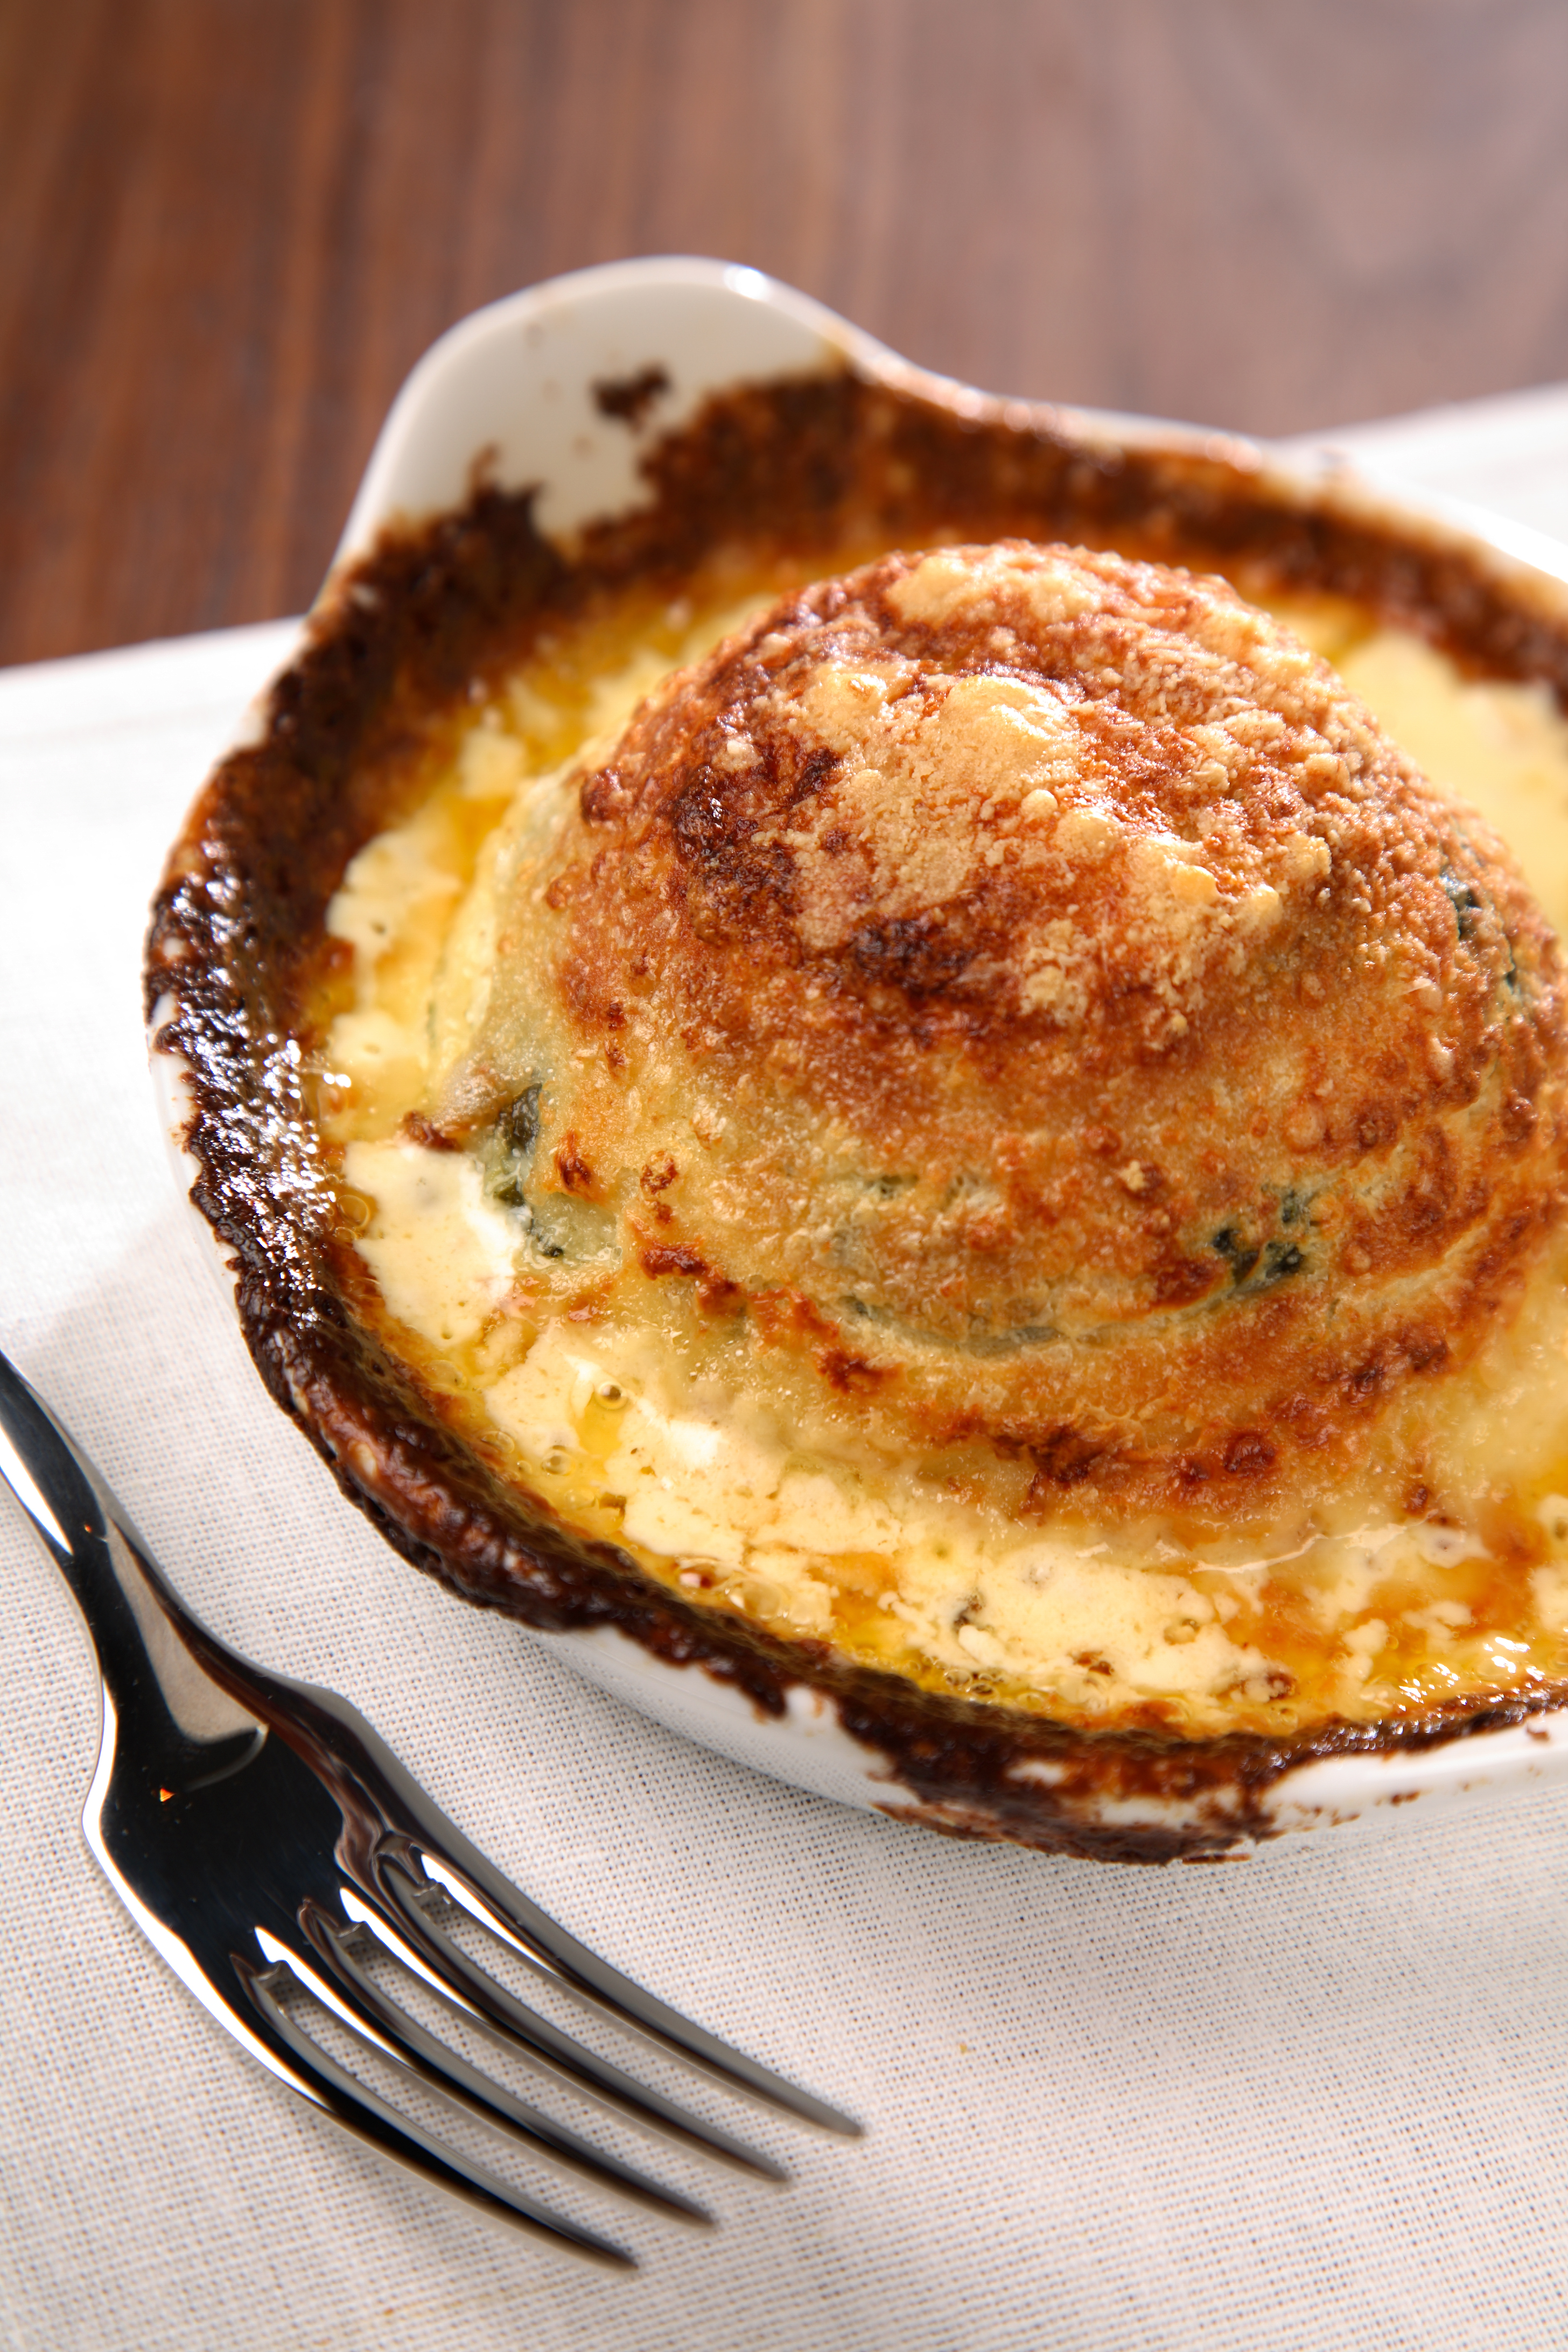 Cafe 21 at Fenwick's Cheese and Spinach Souffle